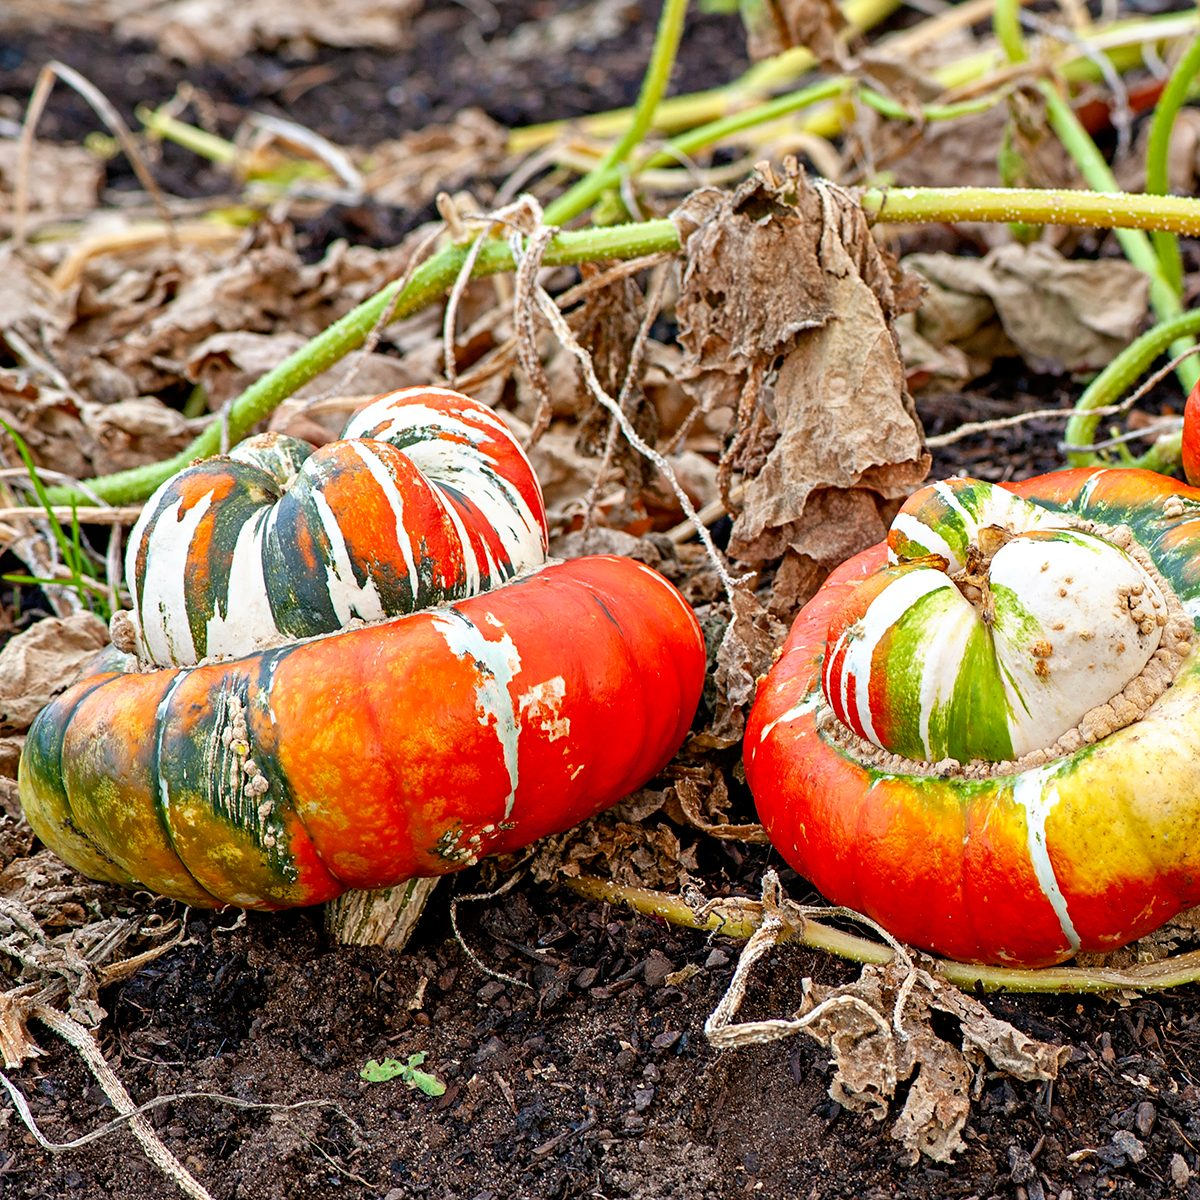 """Turban squash, also known as """"Turk's turban"""" or """"French turban"""", is a type of squash most often used as a winter squash. It is an heirloom, predating 1820. A cultivar of Cucurbita maxima, it is closely related to the buttercup squash. It is typically 6 pounds when mature"""